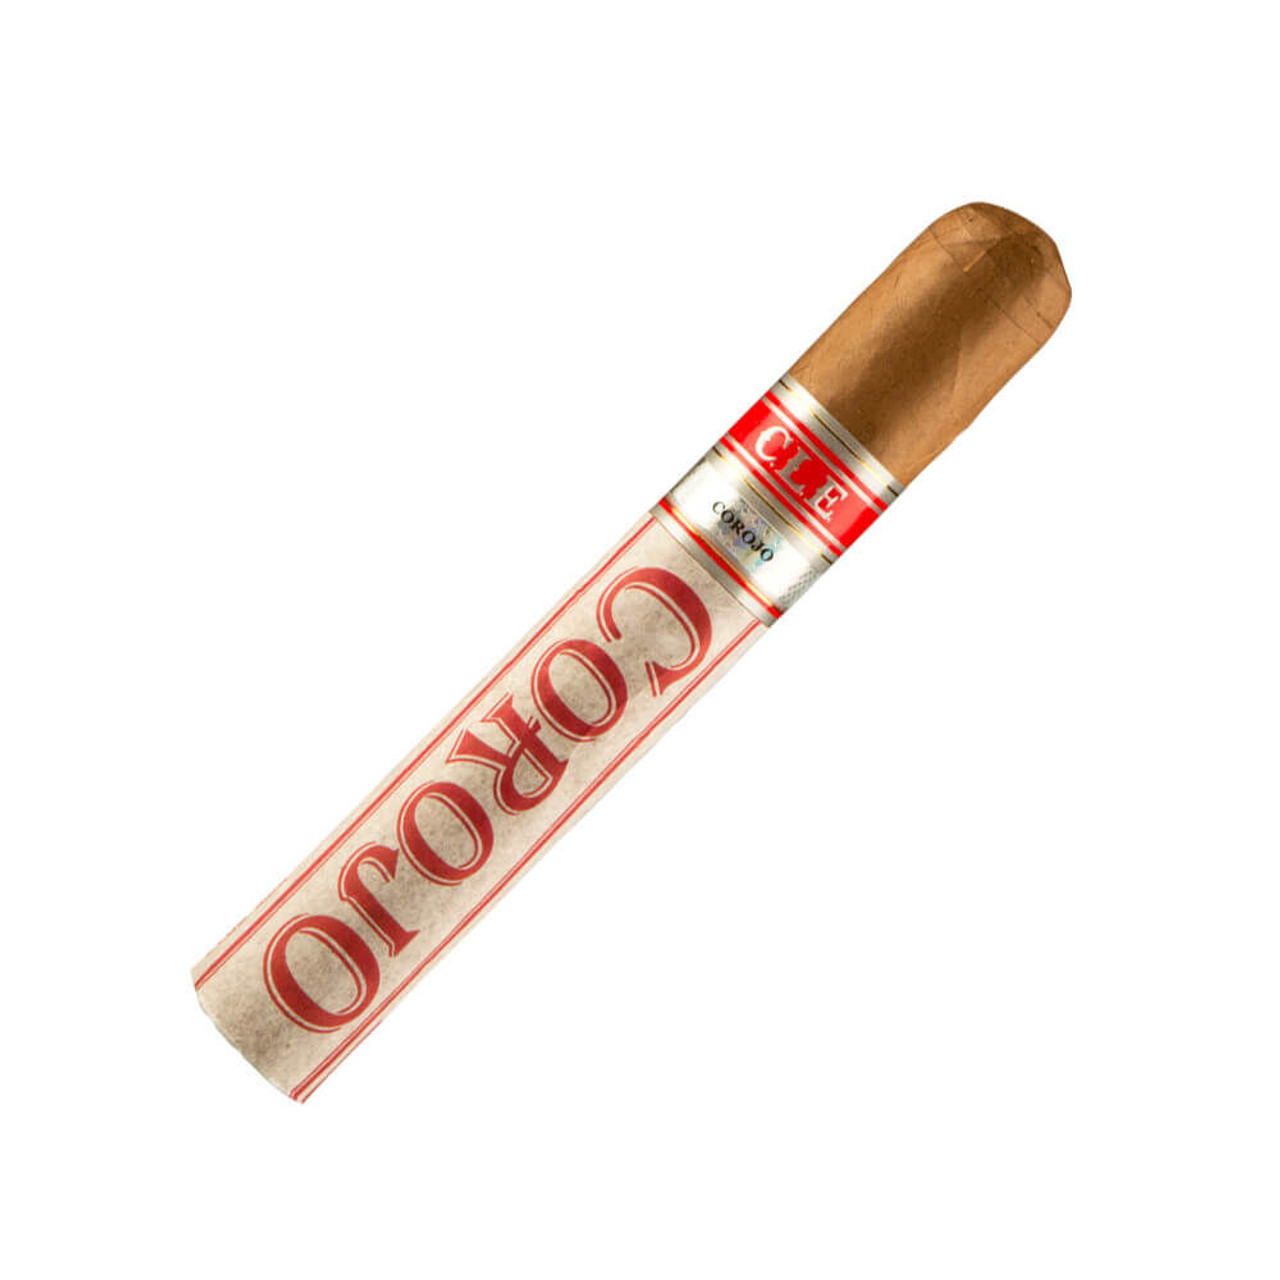 CLE Corojo 6 X 60 Cigars - 6 x 60 (Box of 25)